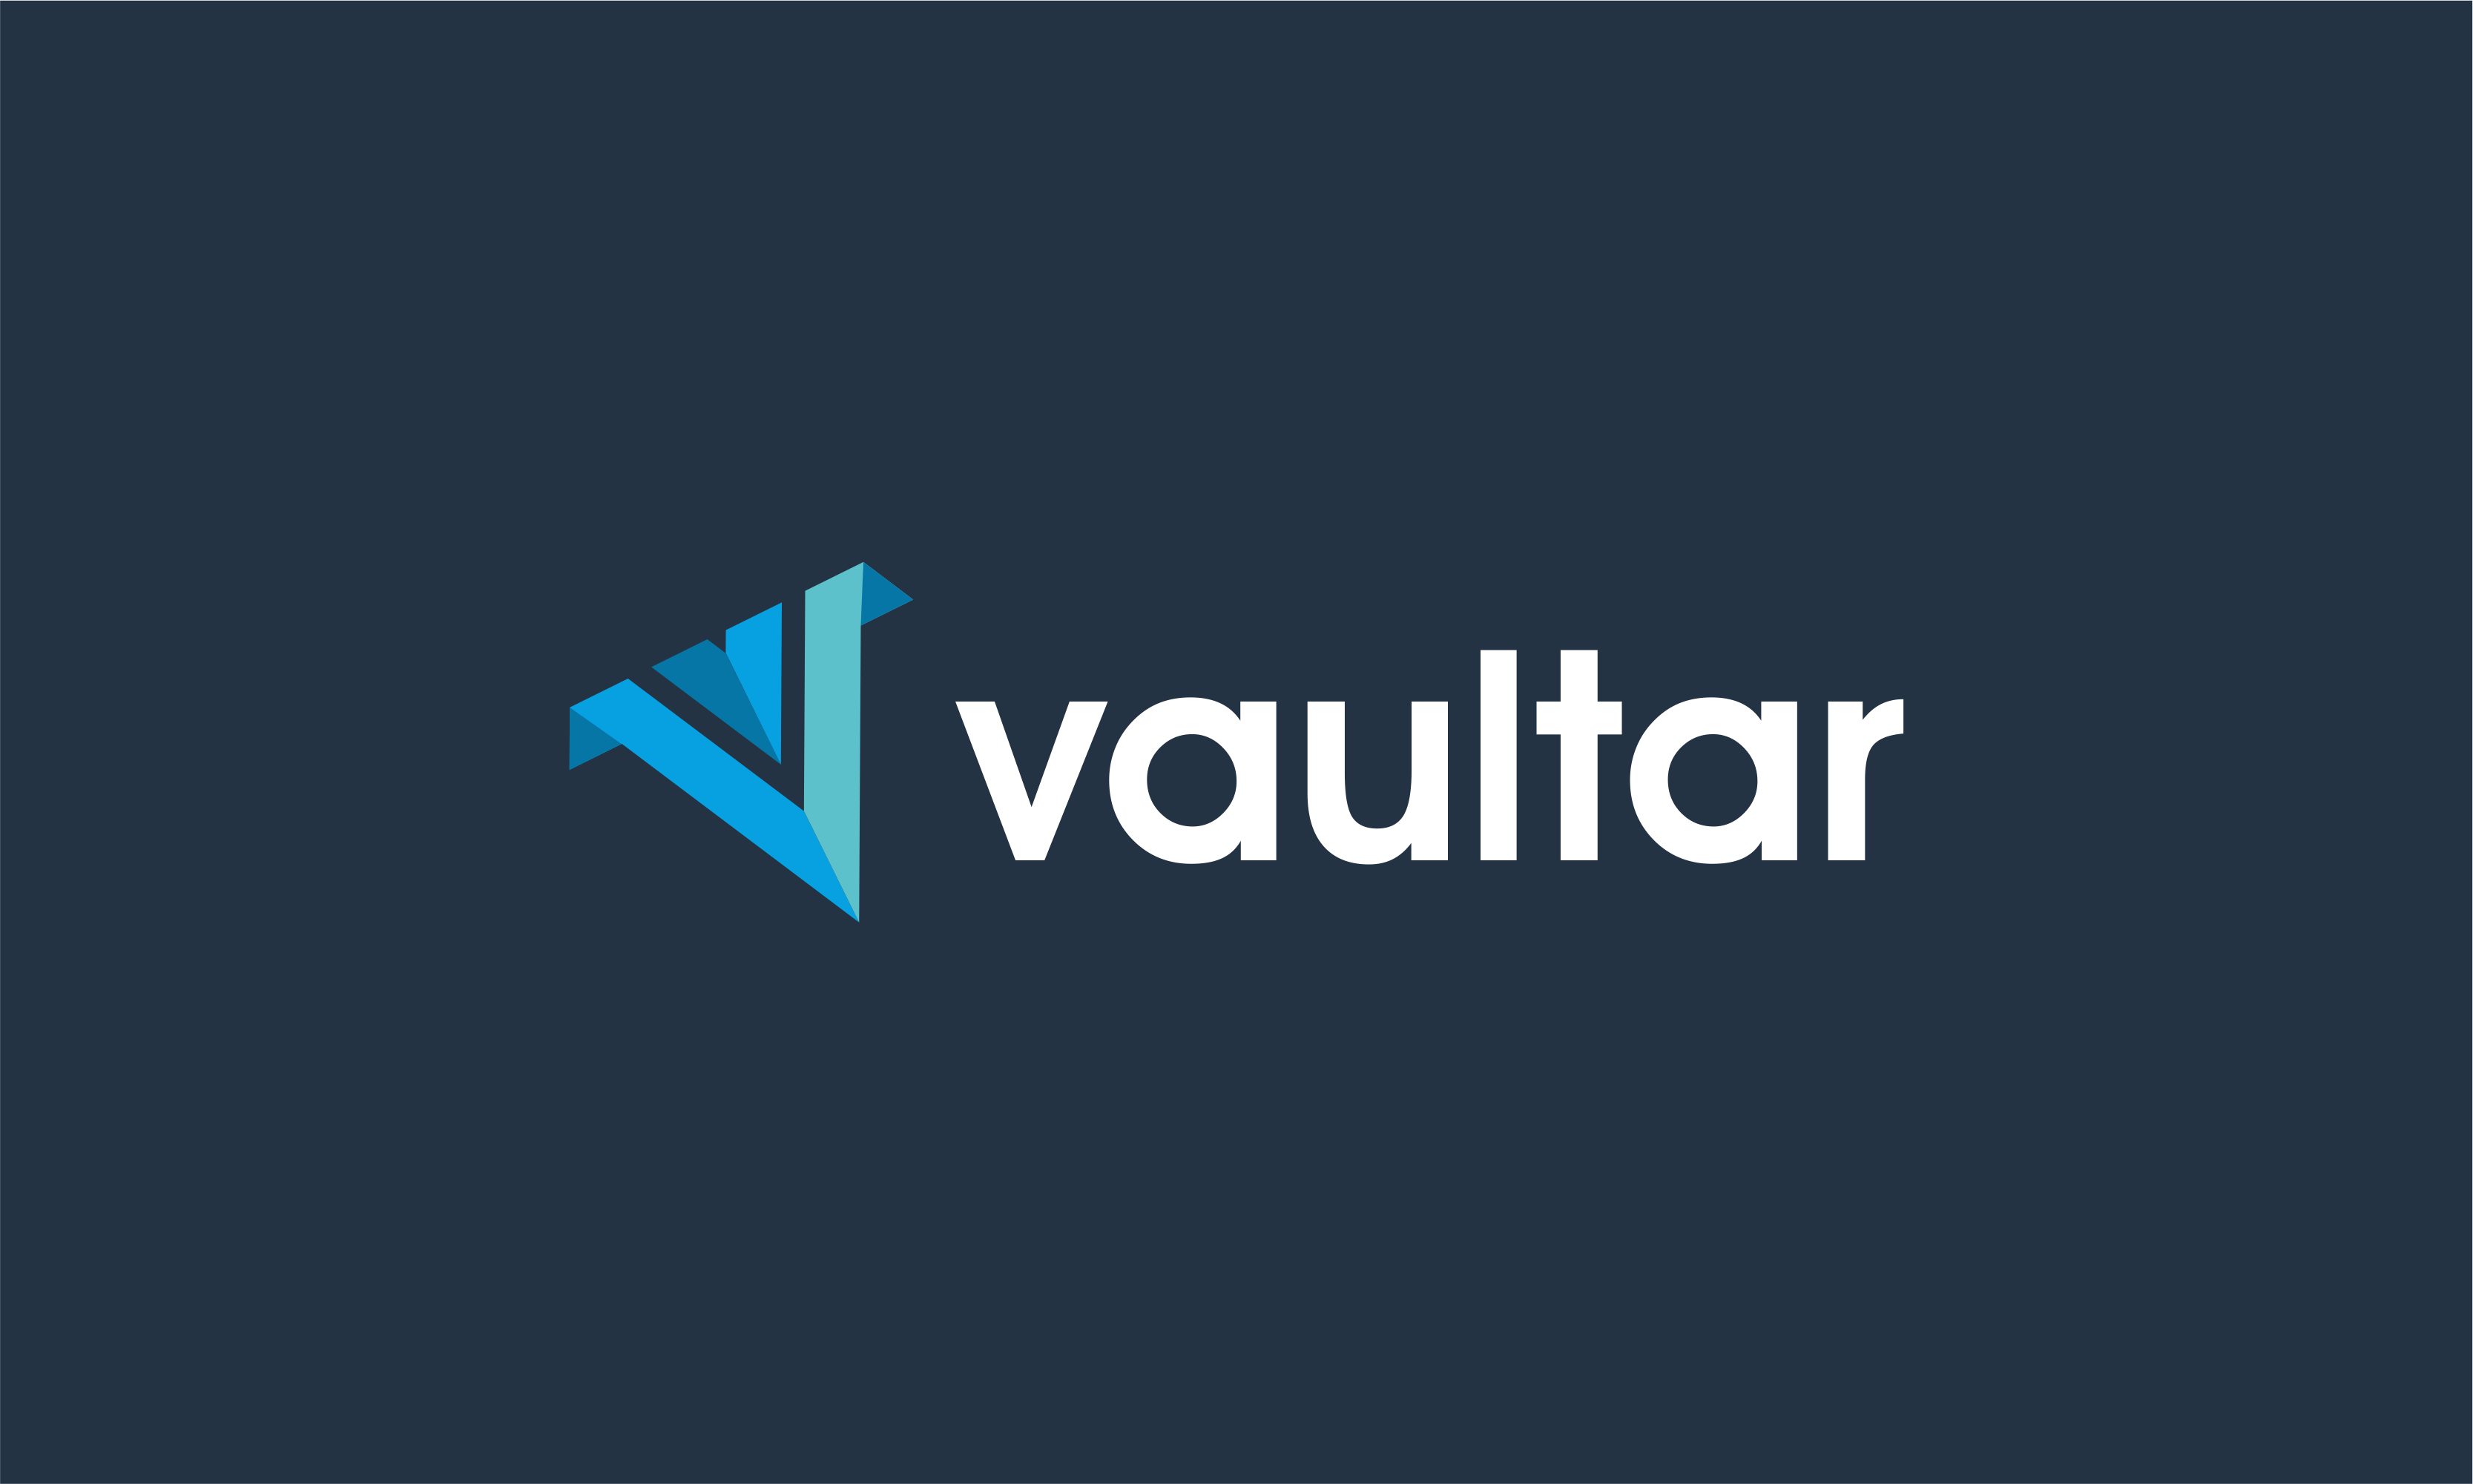 Vaultar - Augmented Reality business name for sale